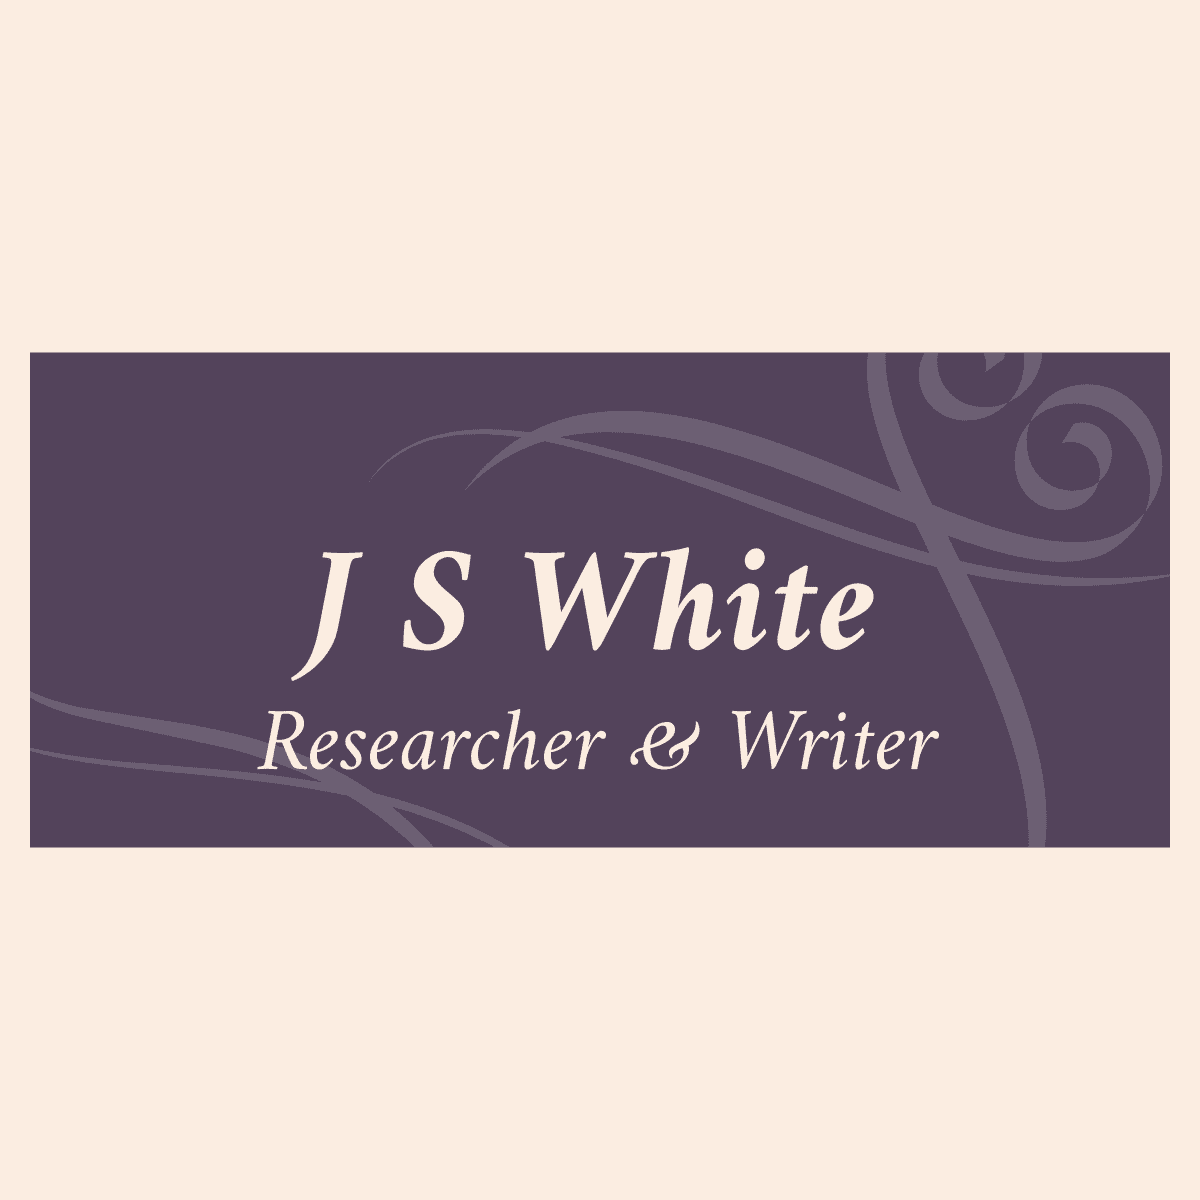 Janine S White: Researcher and Writer